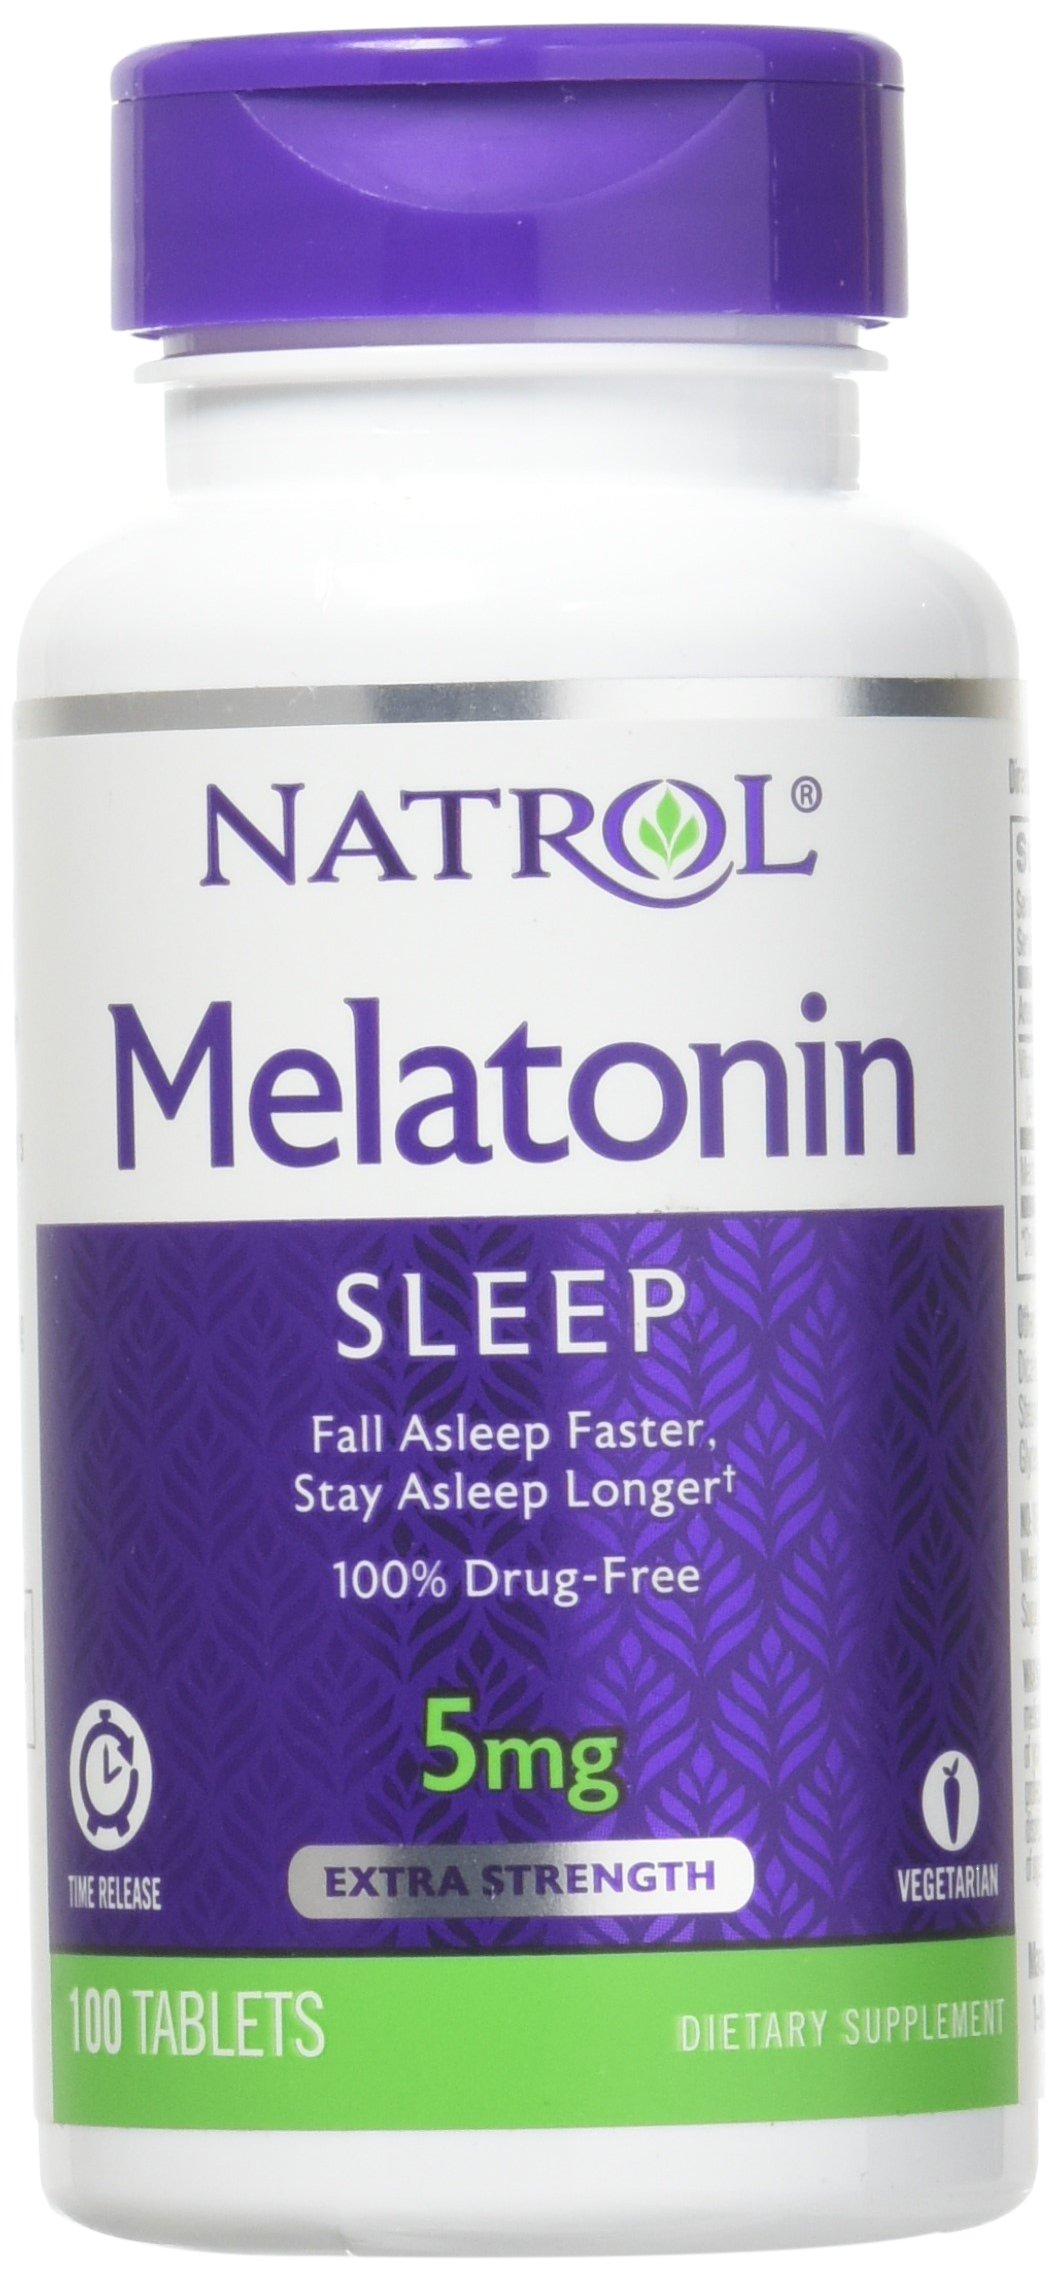 Melatonin 5 mg Time Release by Natrol 100 Tablets